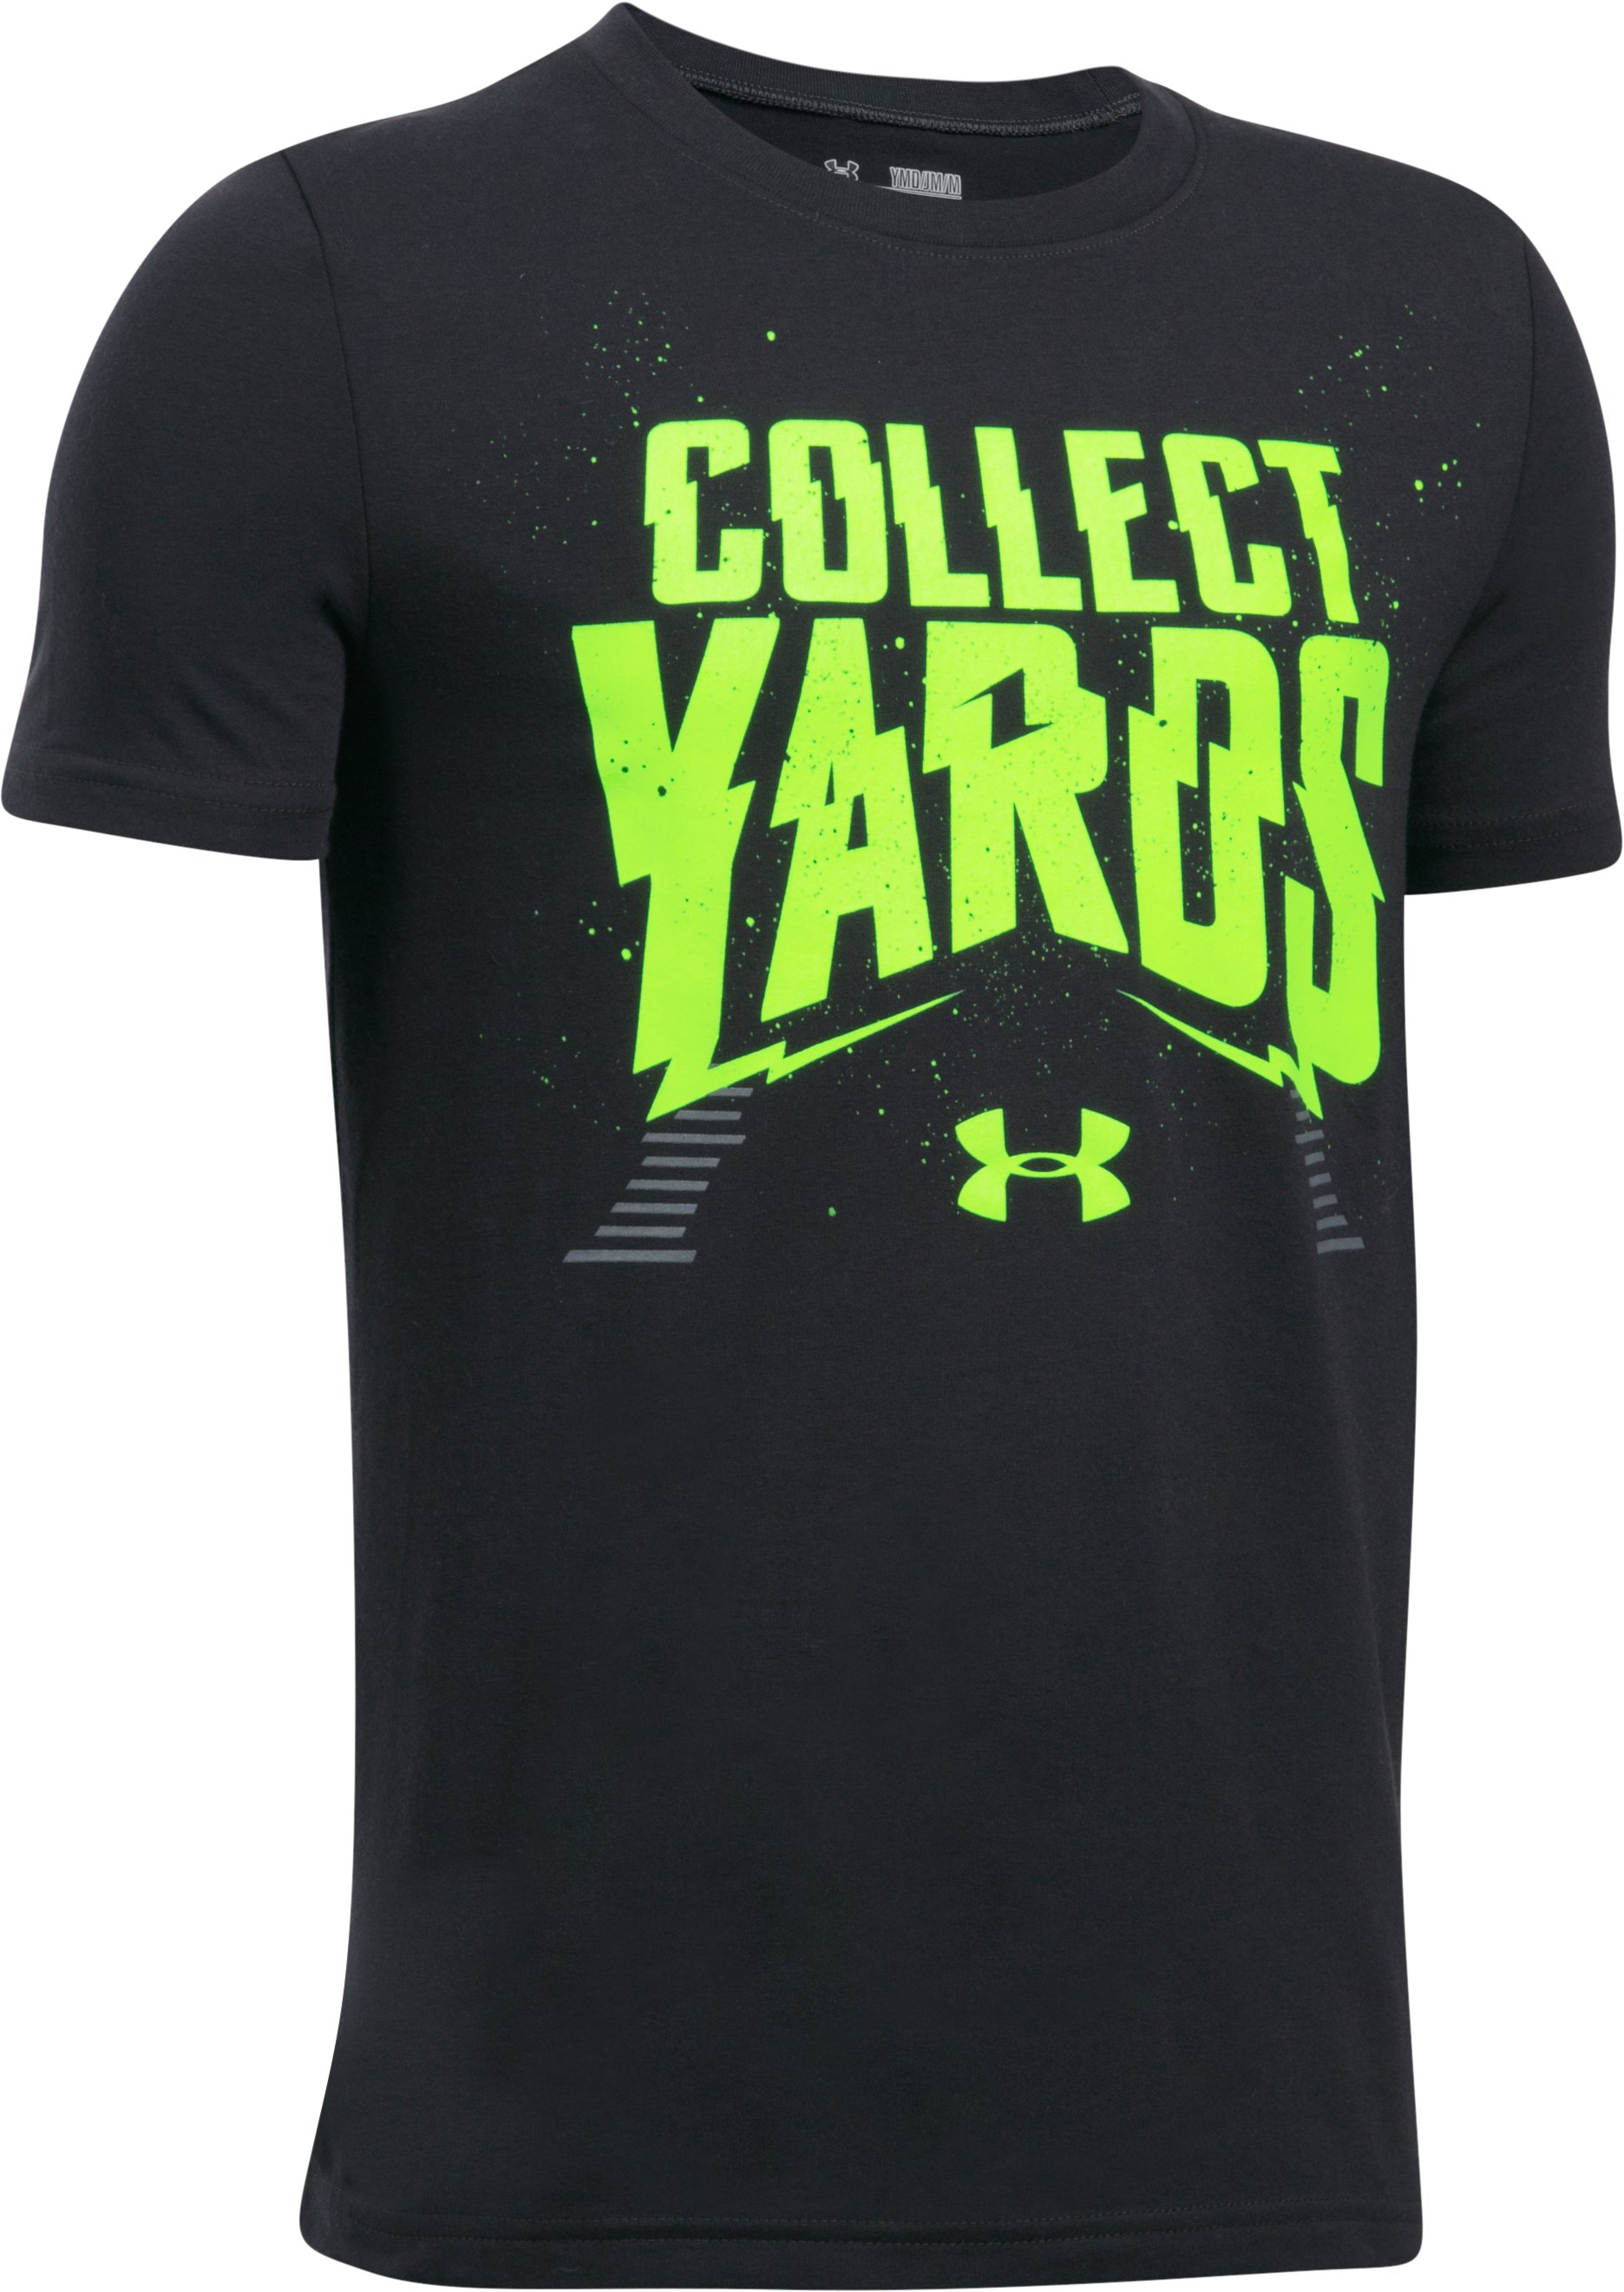 Boys' UA Collect Yards T-Shirt, Black ,